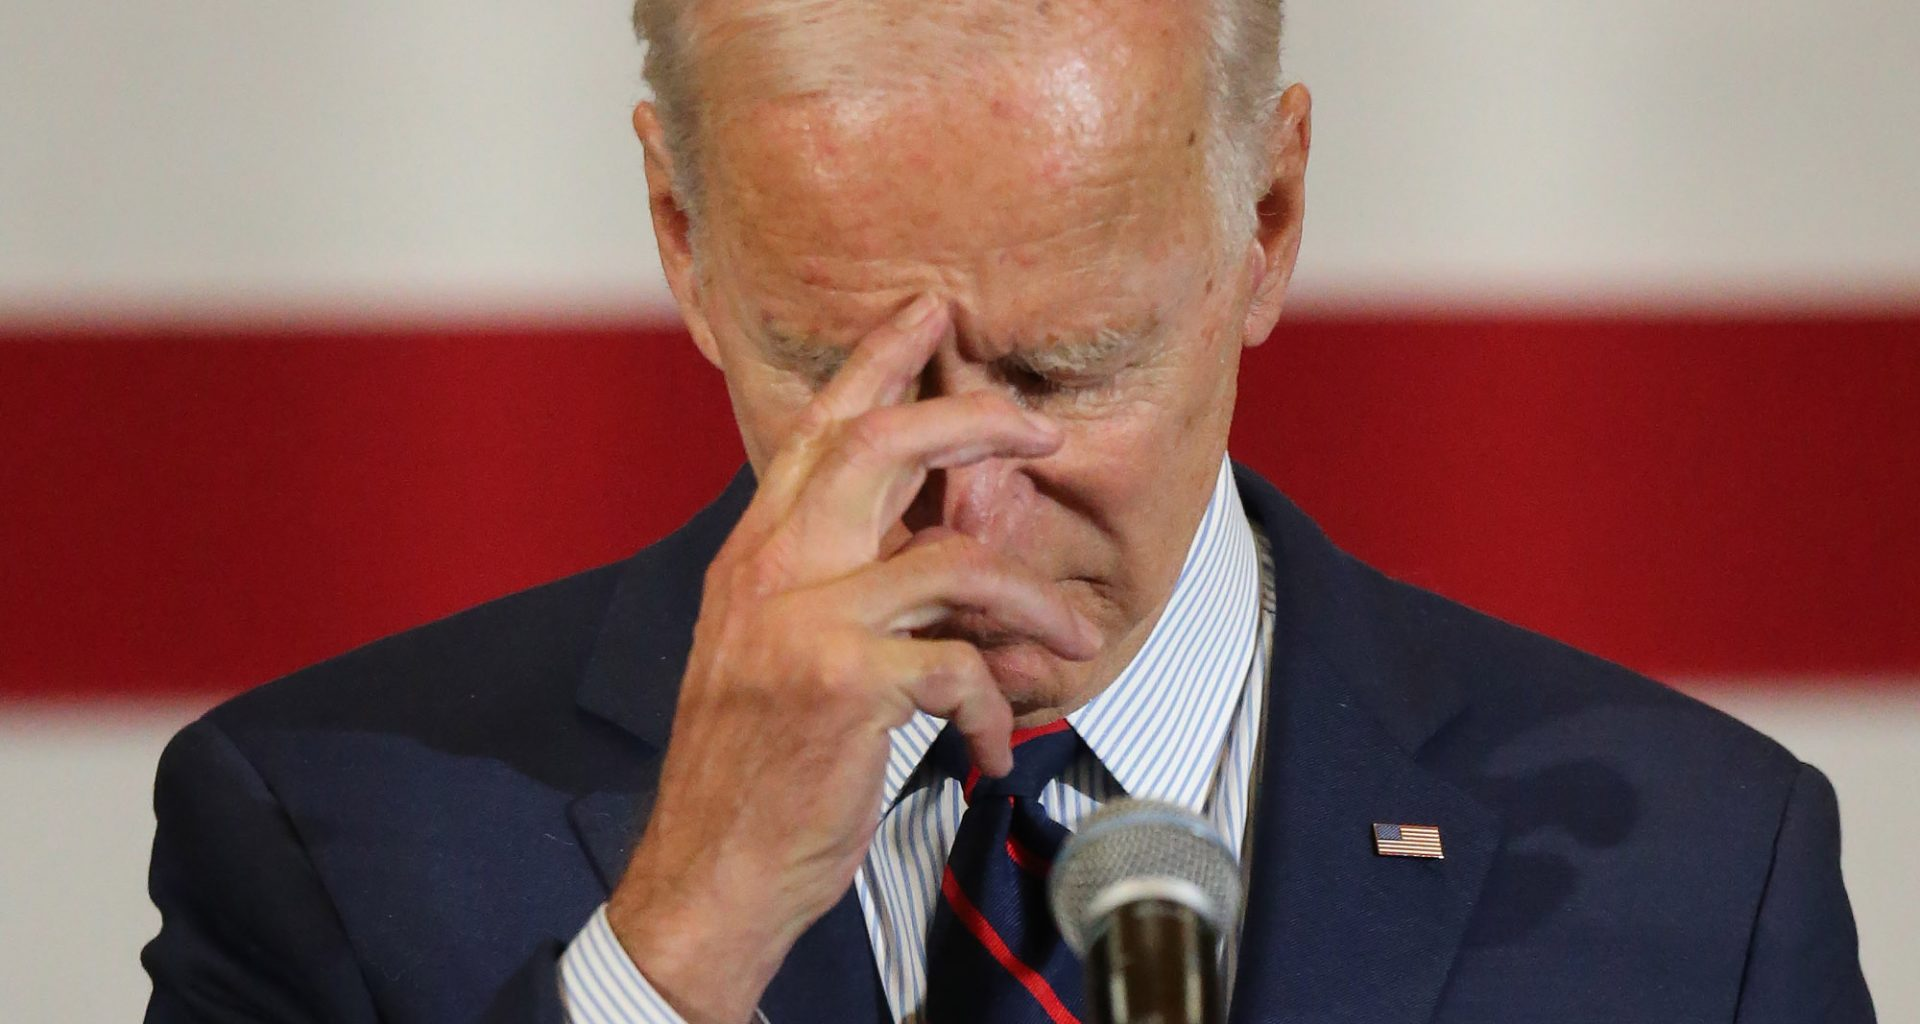 GOP Outsmarts Biden, Finds Clever Way to CANCEL His Abuse of Power